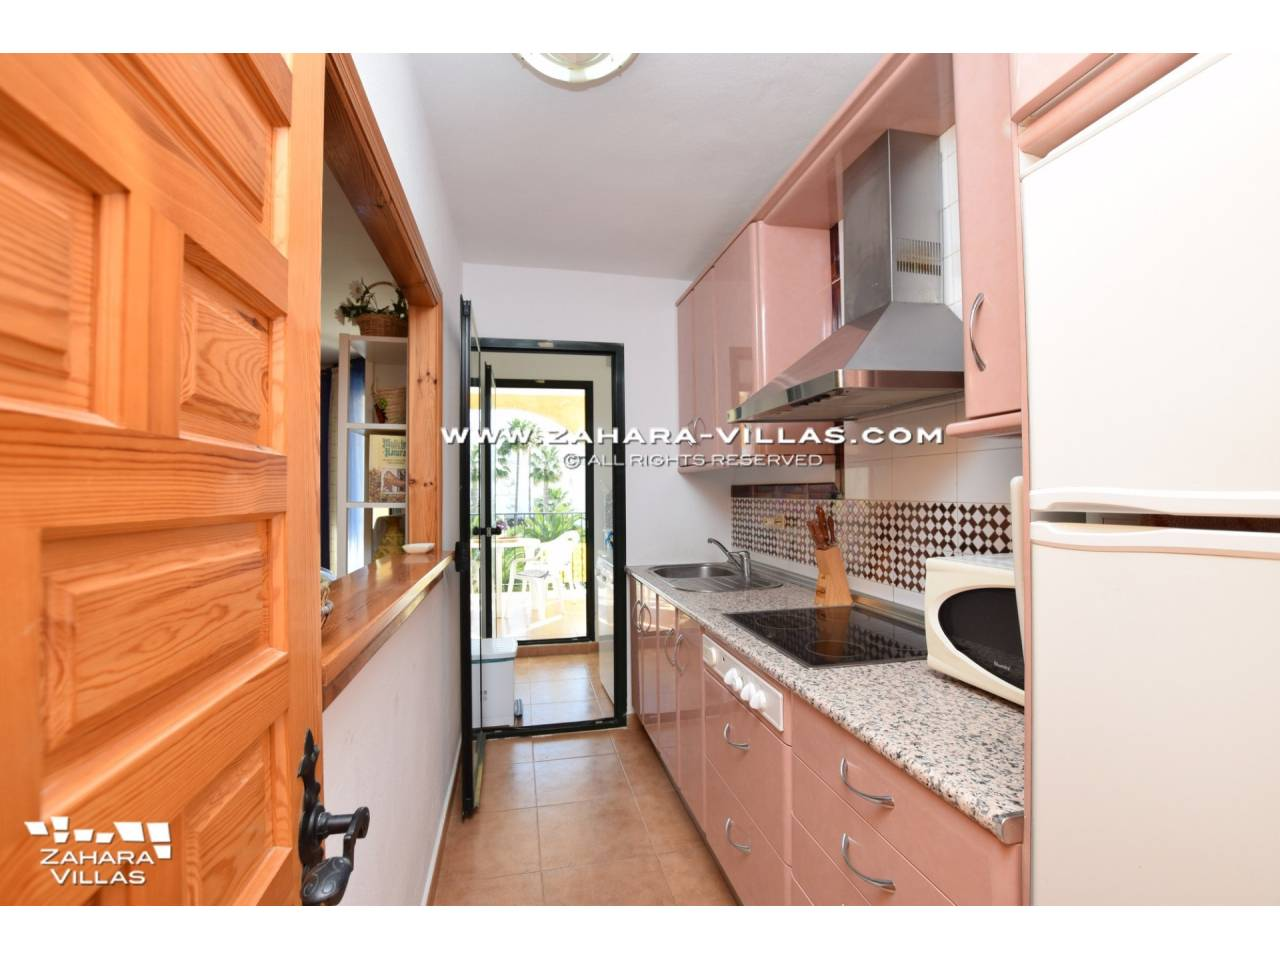 Imagen 15 de Apartment for sale in Zahara de los Atunes